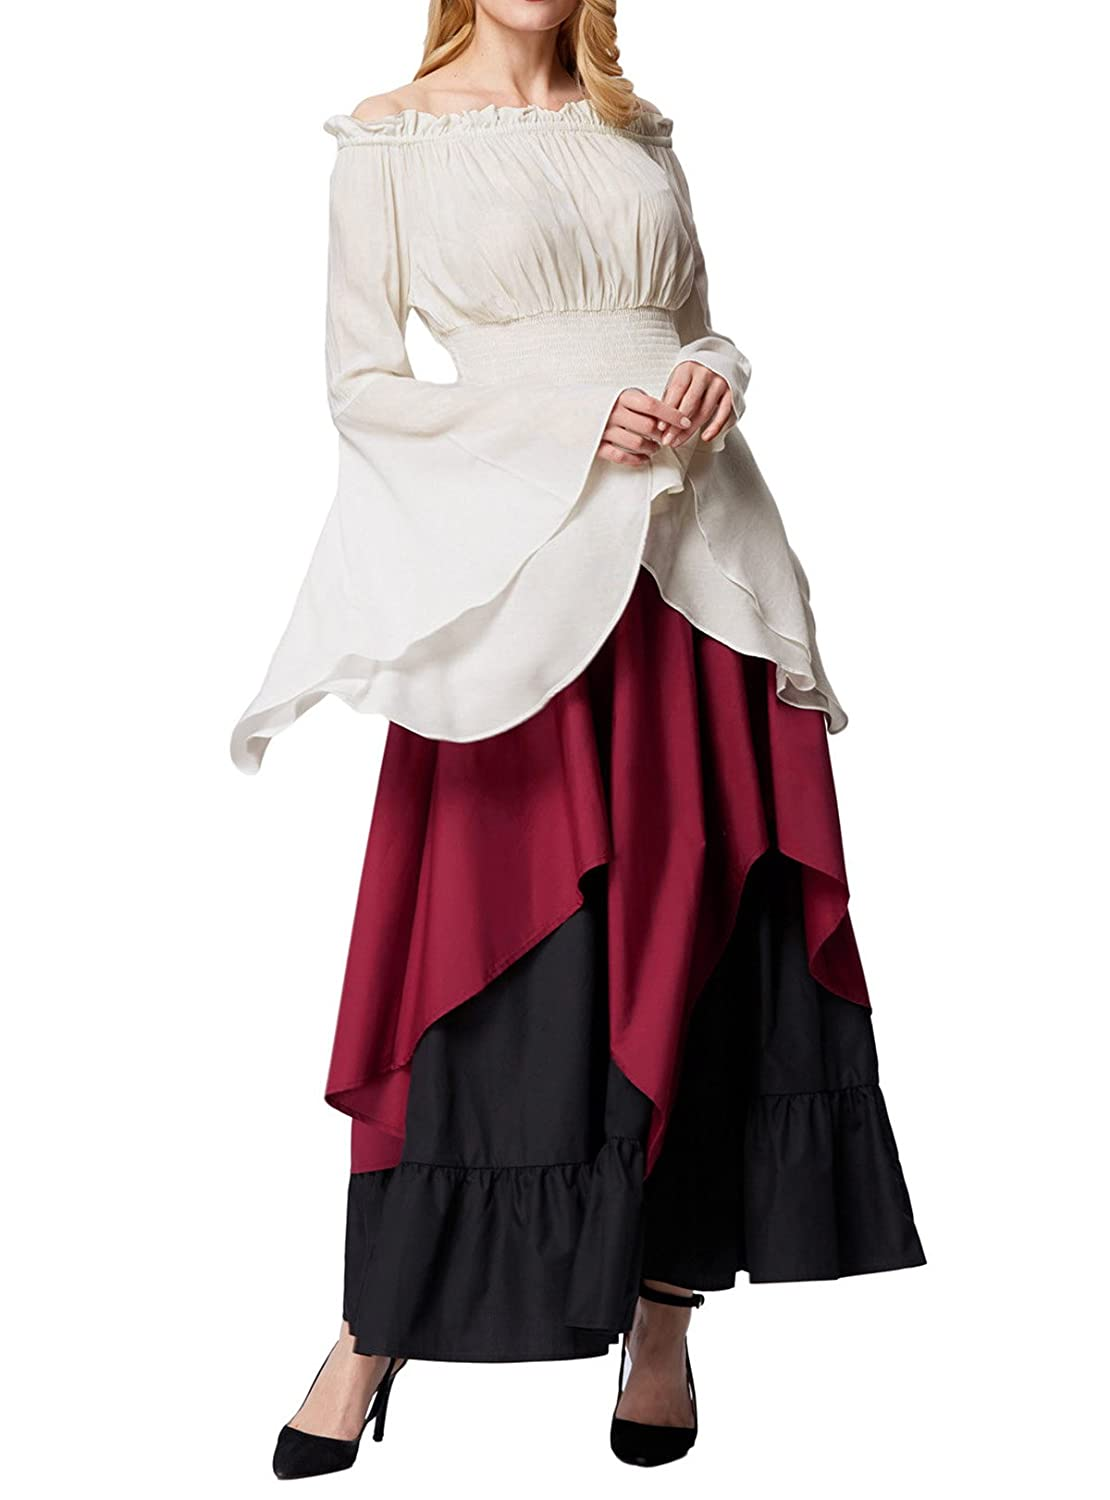 8d53dd3099b Features  Well elastic waistline  Asymmetrical two layers design  Contrast  color design  Pull-on closure. Style  Renaissance skirt  Gothic victorian  skirt  ...